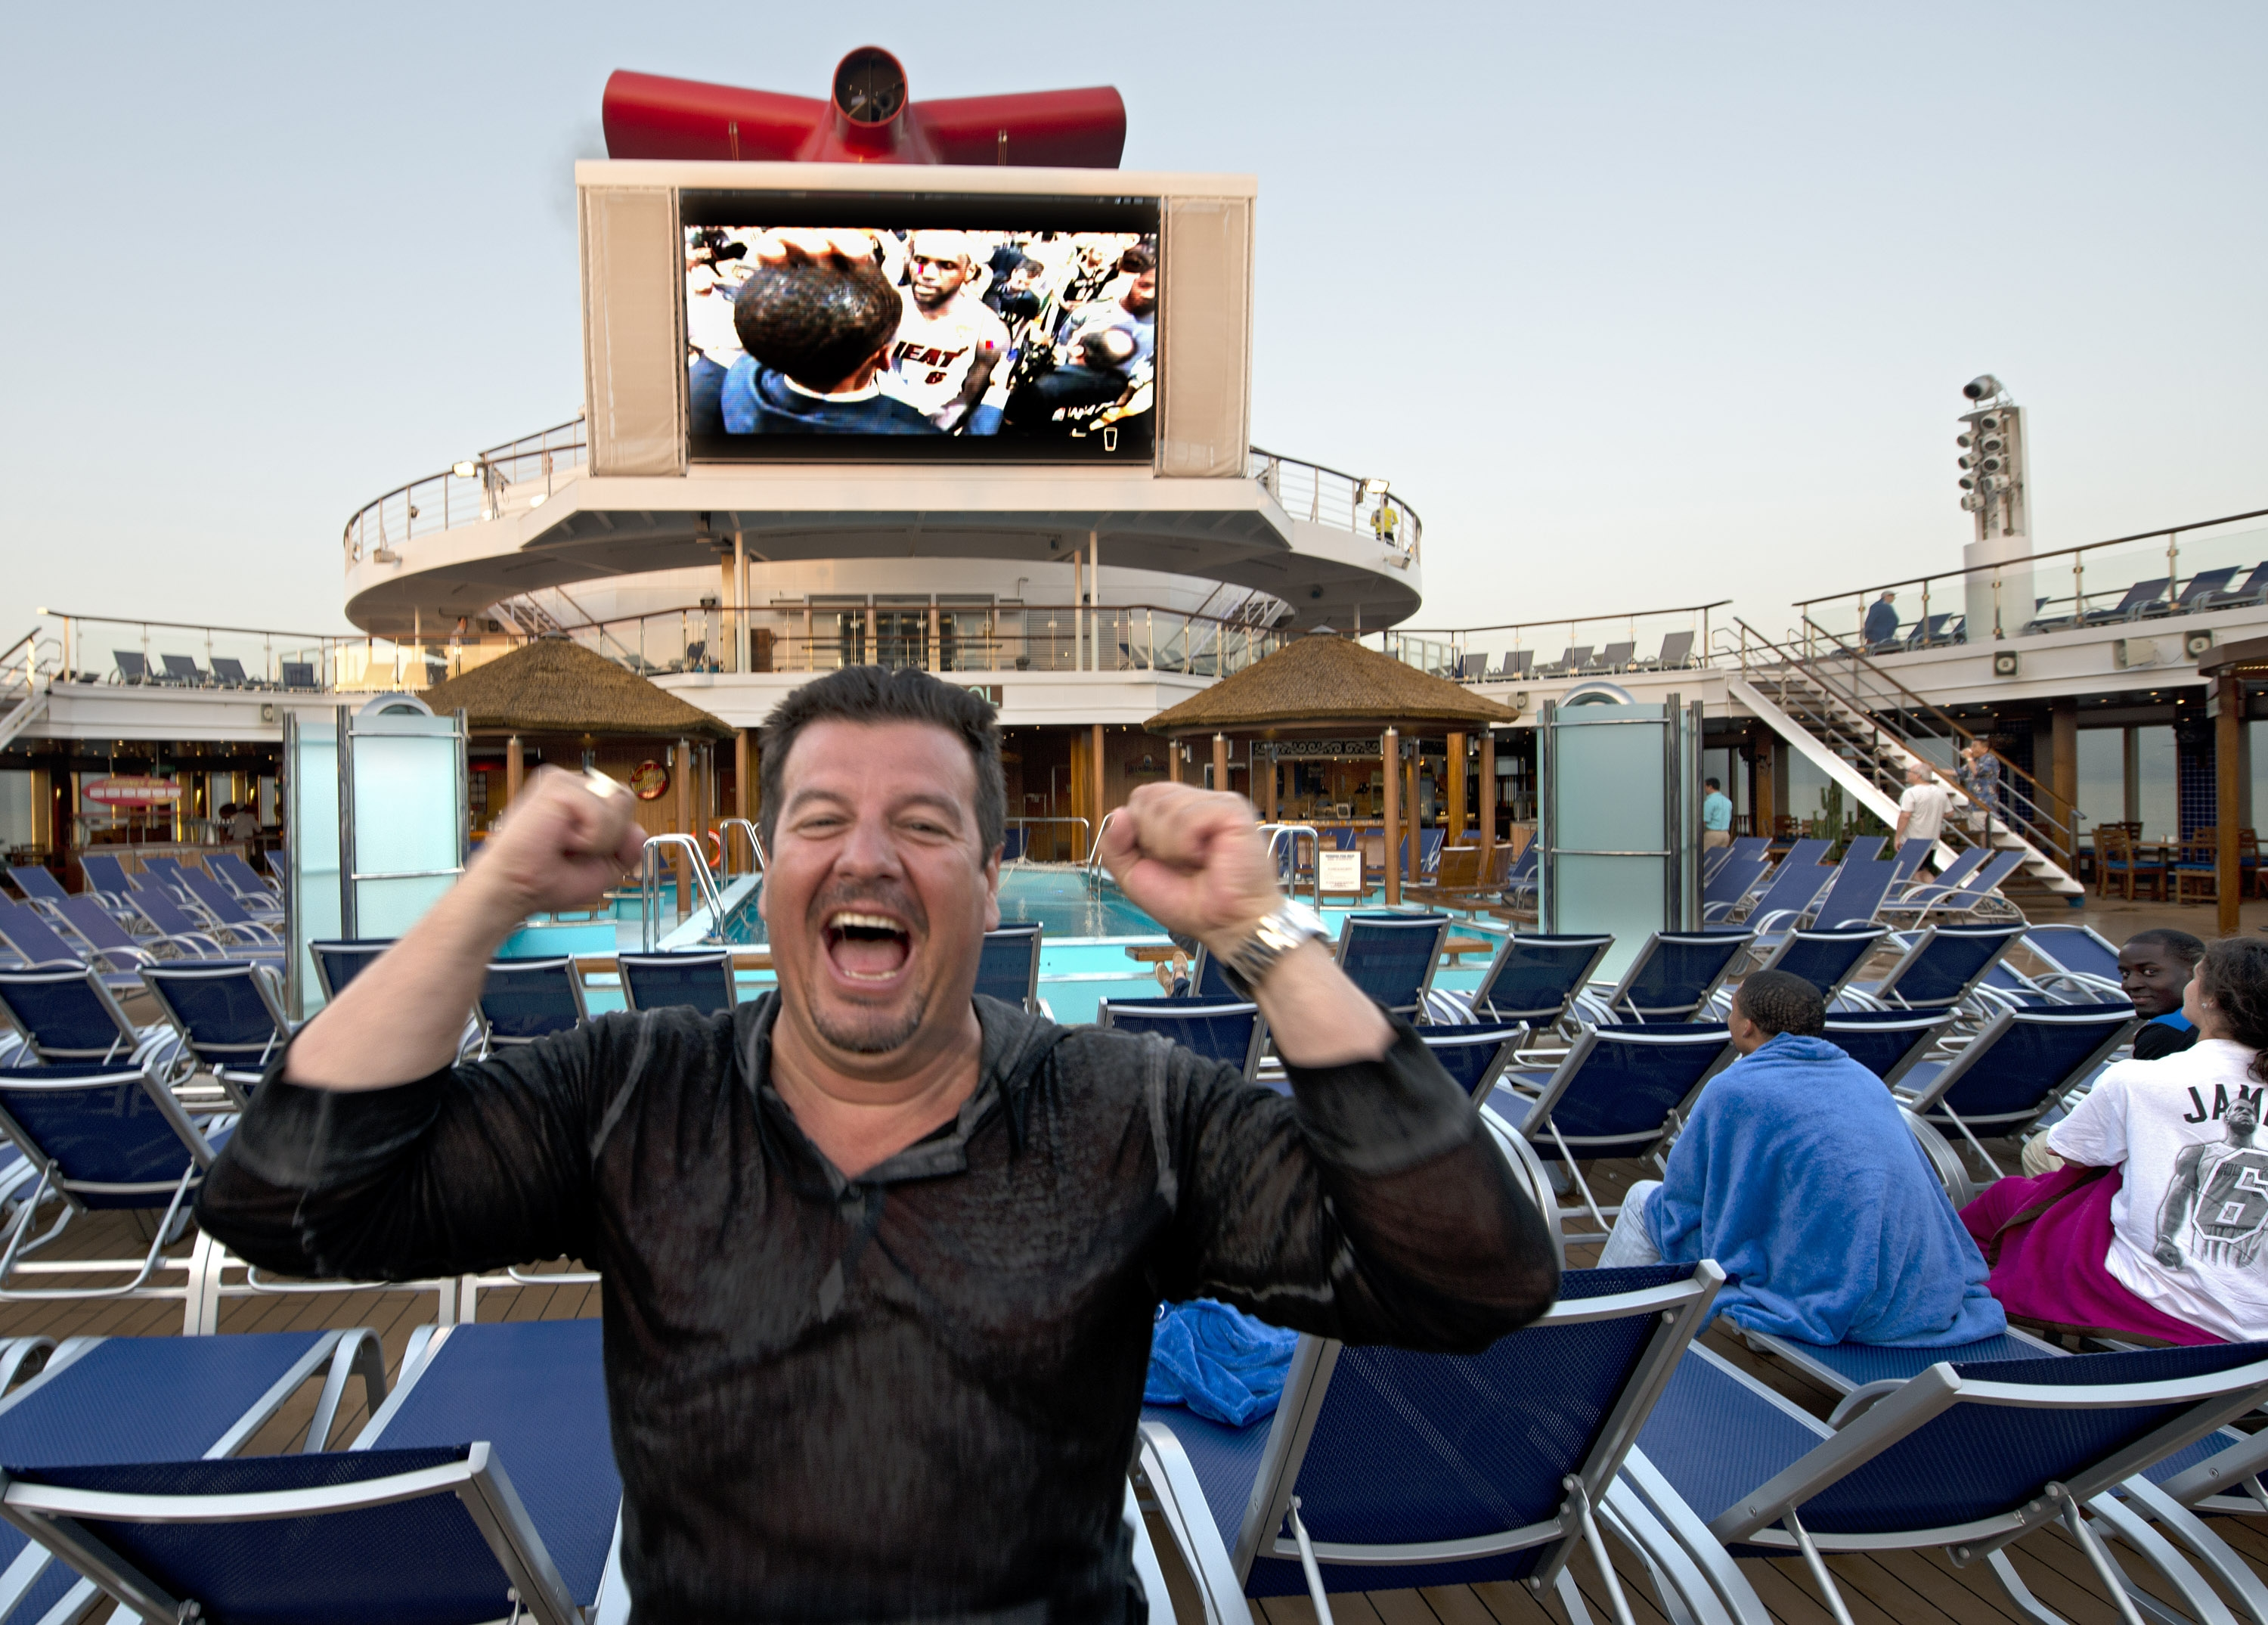 Miami Heat Fans Sailing on the Carnival Sunshine Celebrate the Team's Second Consecutive NBA Championship Win